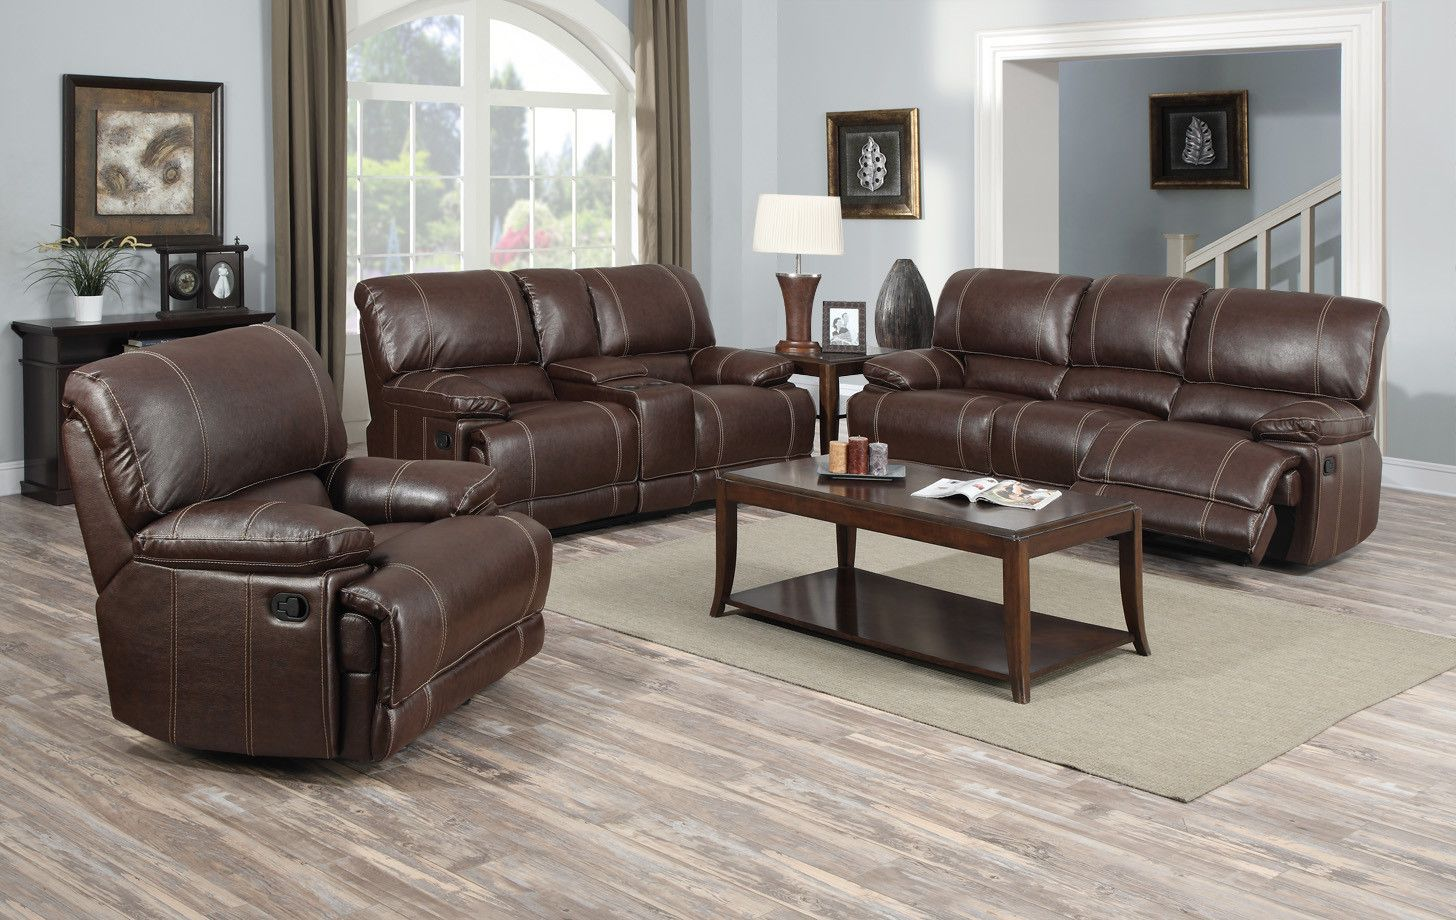 Best 1560 The Contemporary Living Room Set Cocoa Products 640 x 480